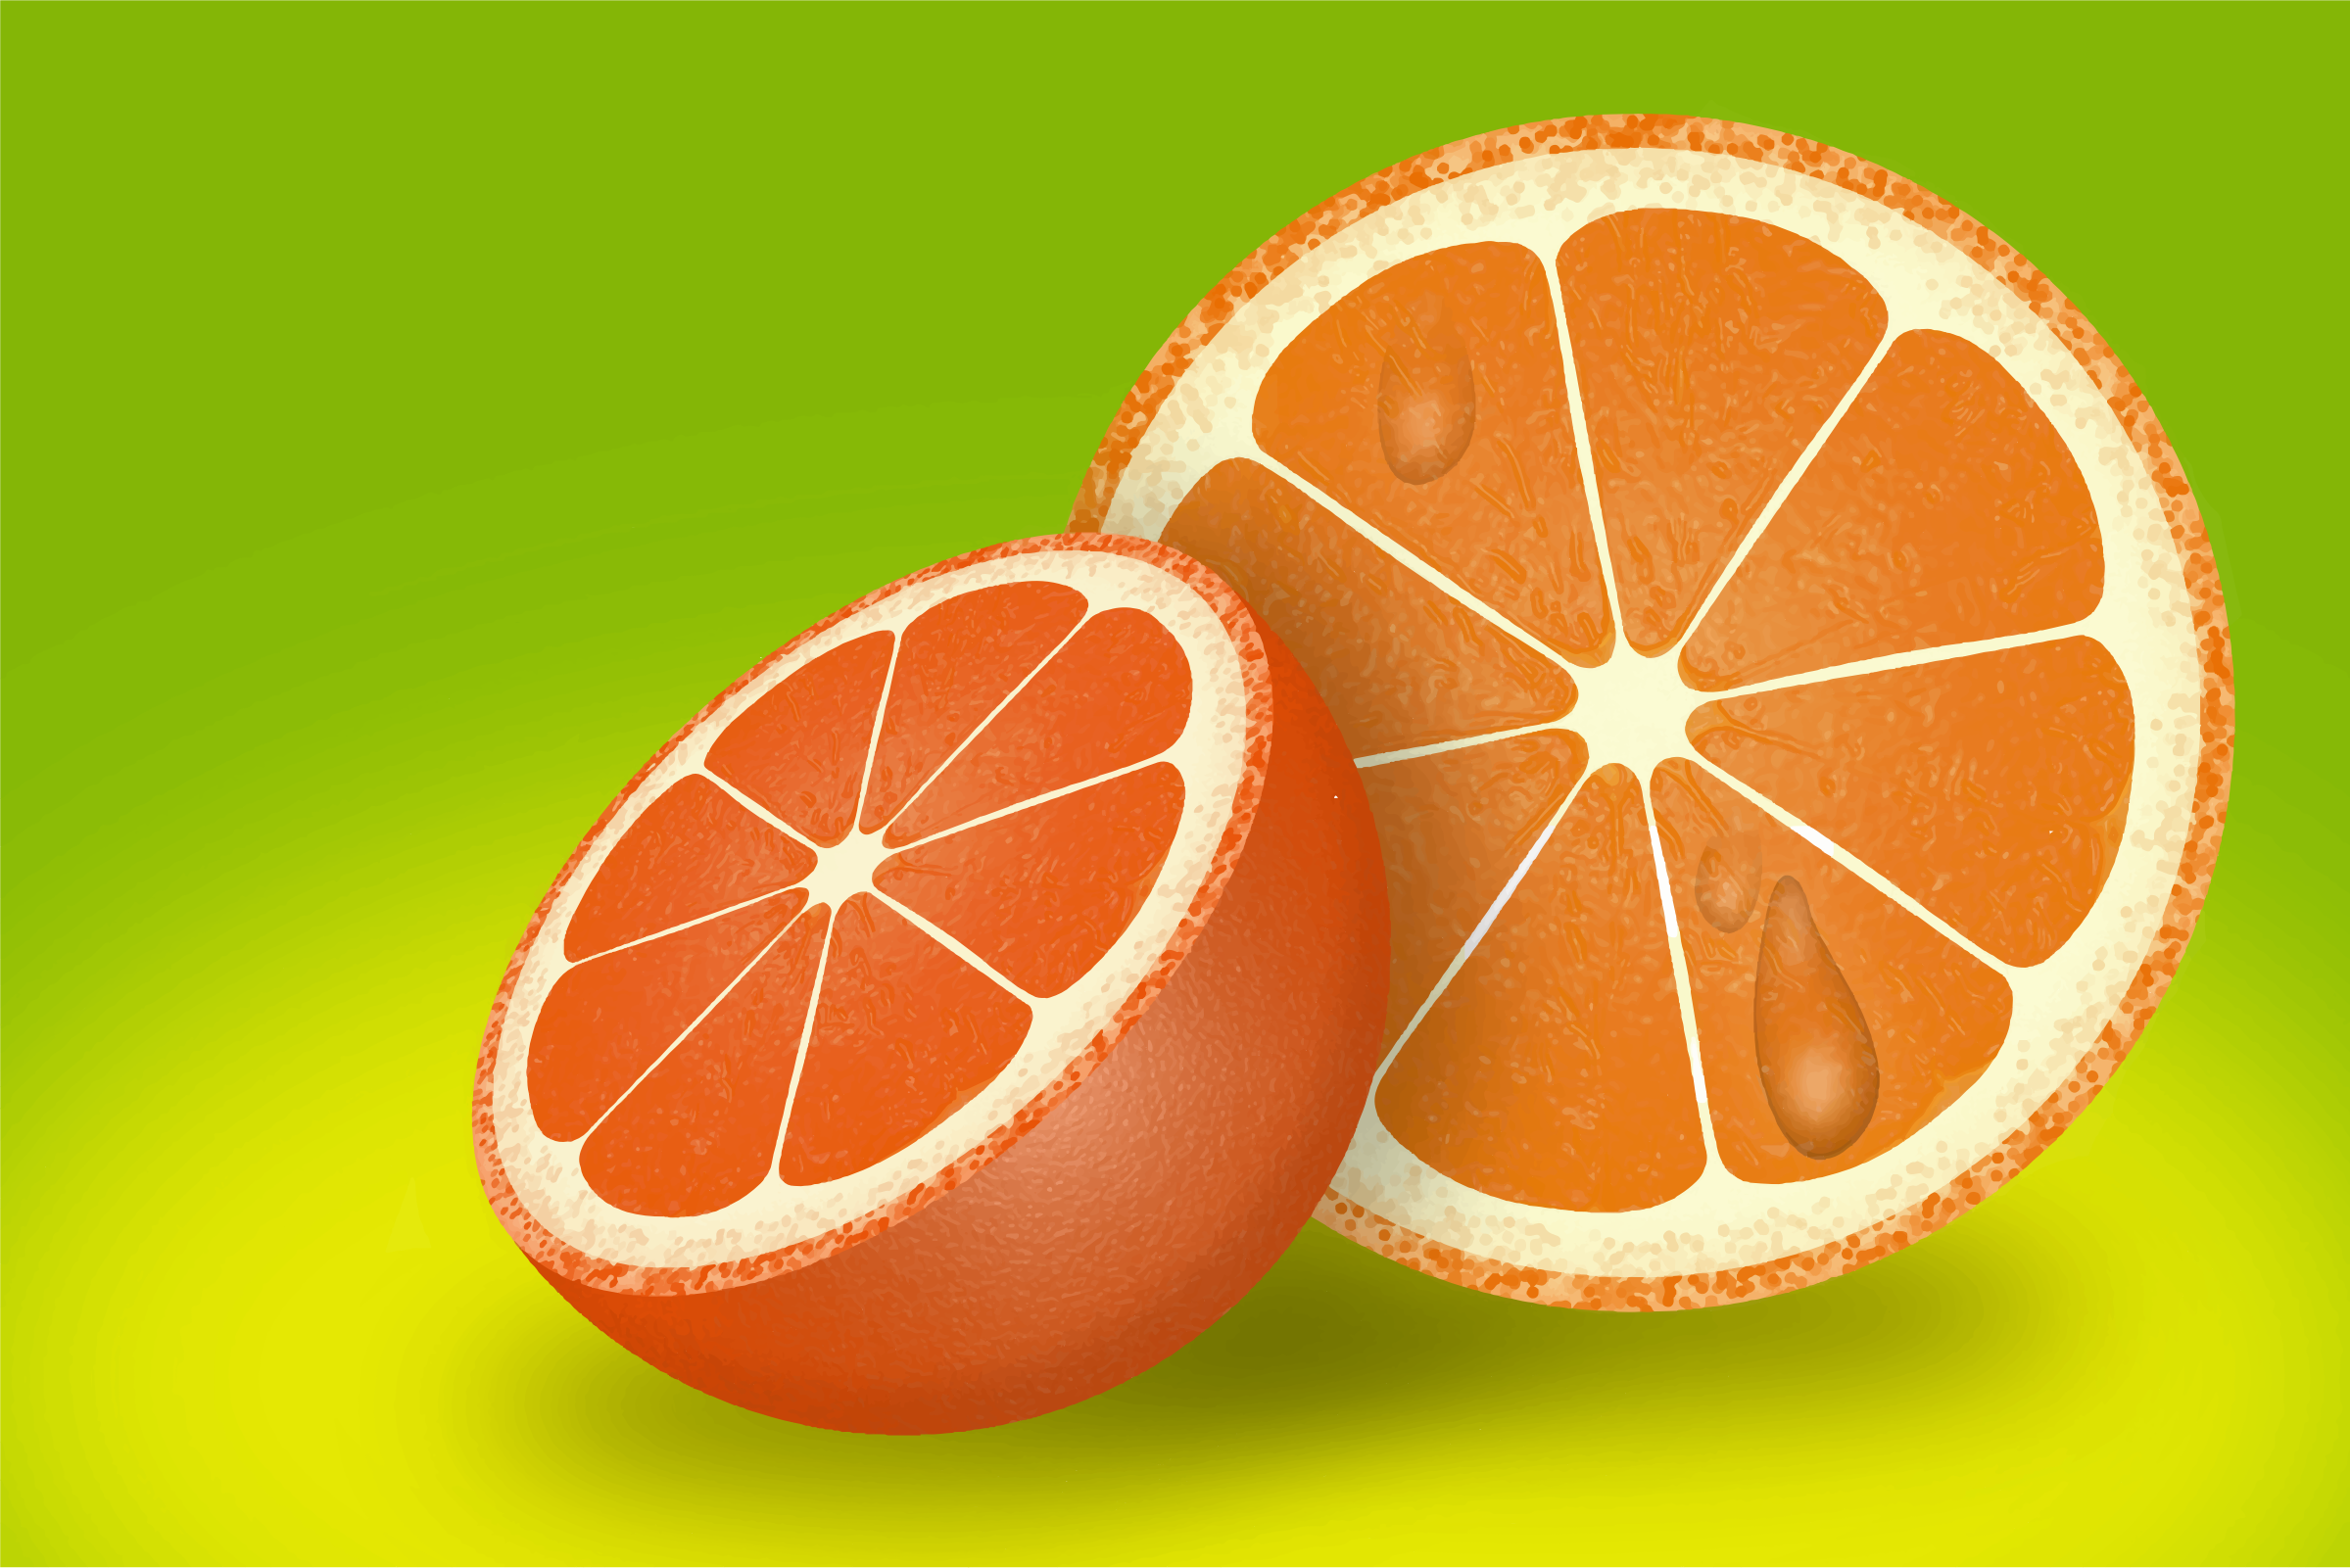 Refreshing Sliced Orange by GDJ